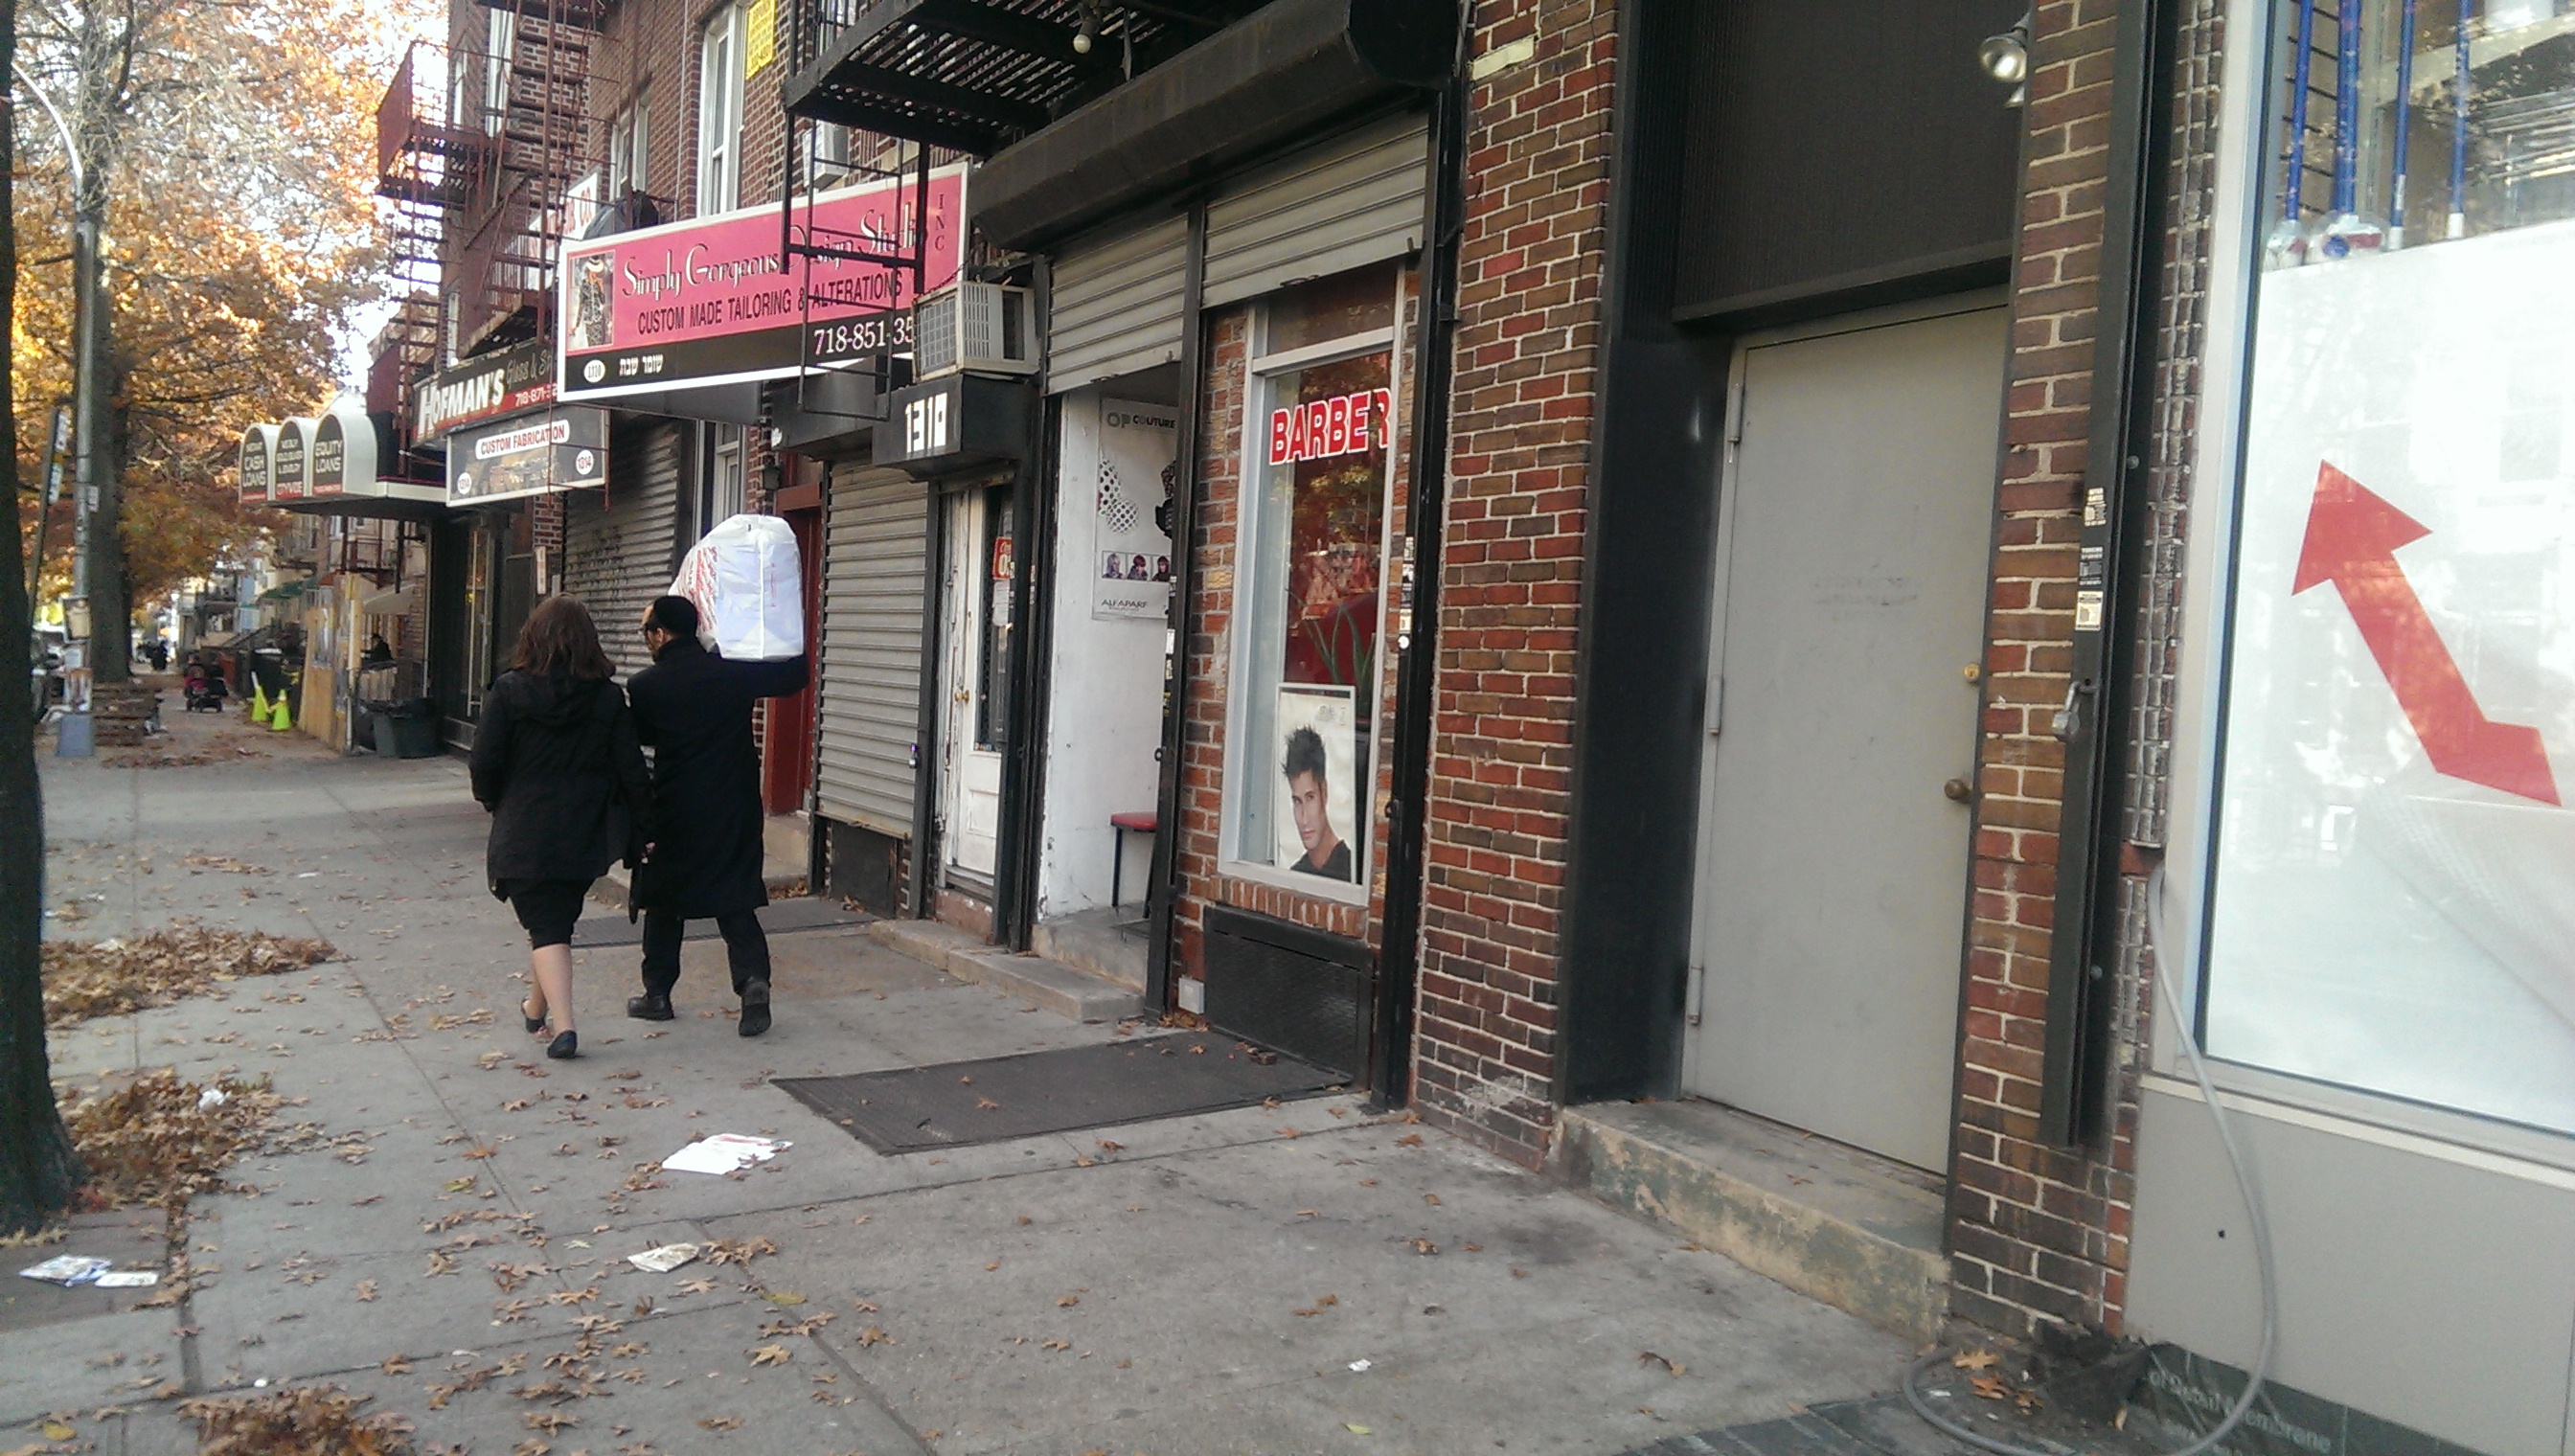 Barber Shop Brooklyn : . 10 , 2013, near the barber shop in Borough Park section of Brooklyn ...